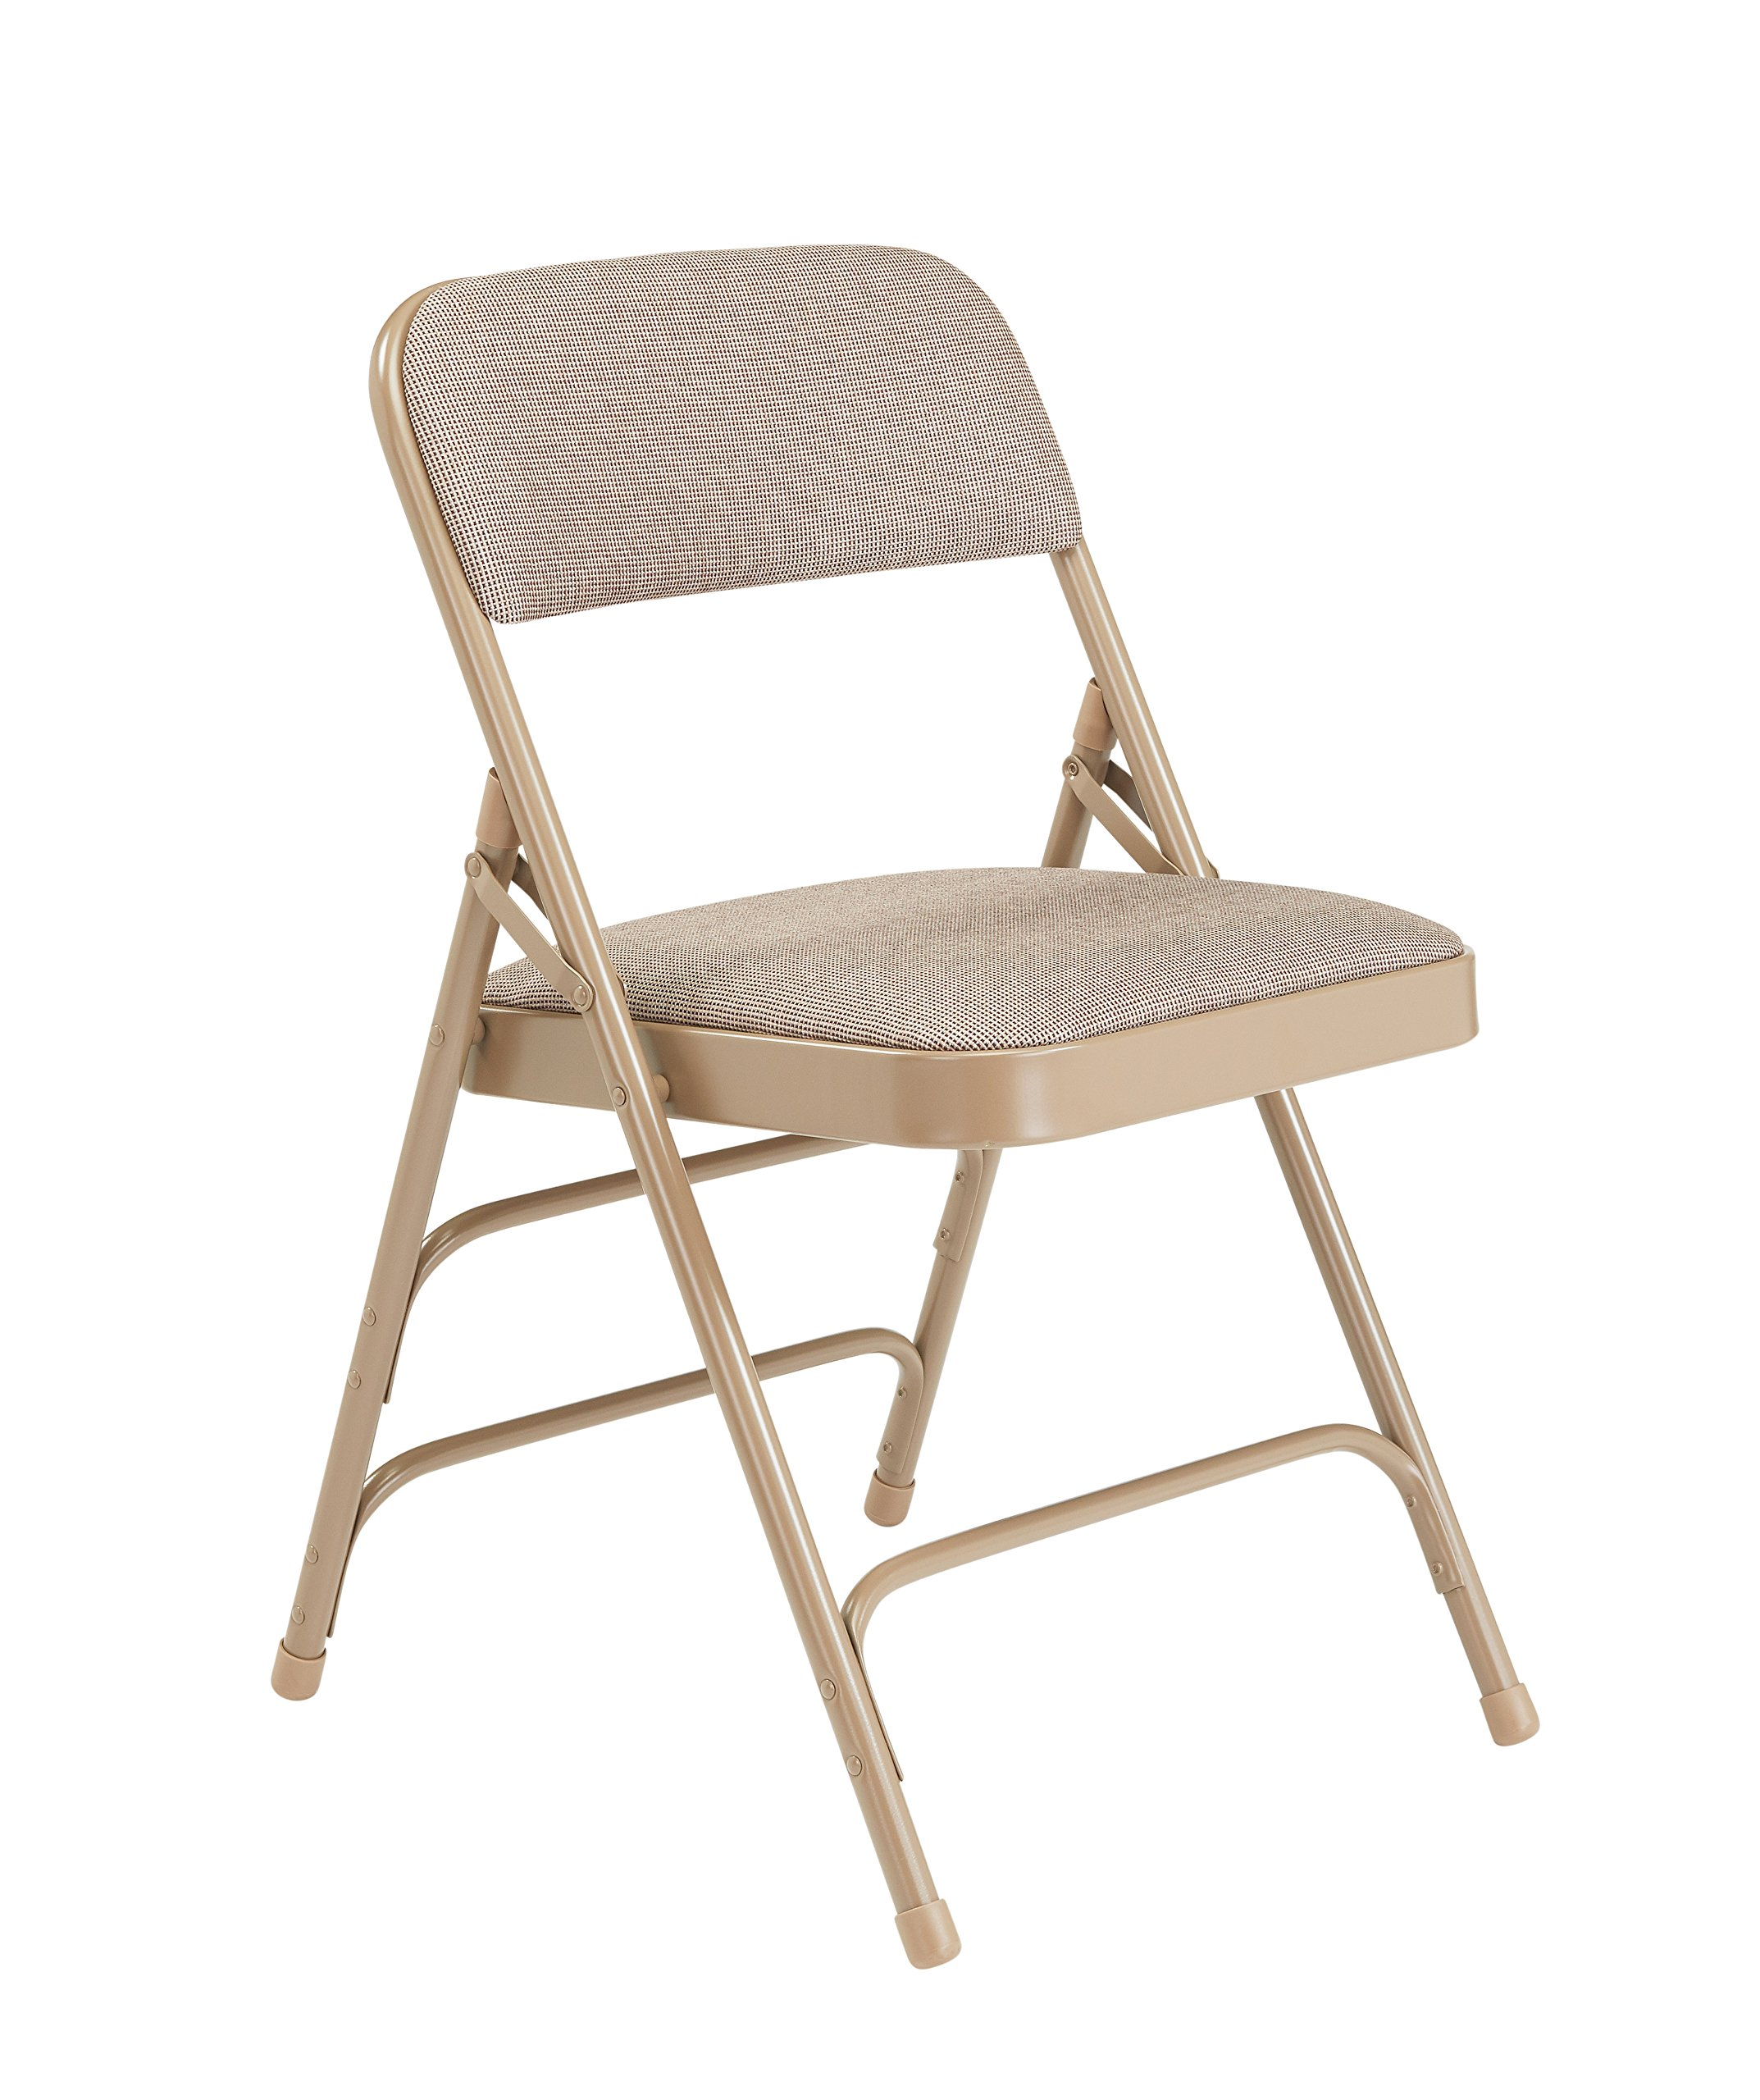 National Public Seating 2300 Series Steel Frame Upholstered Premium Fabric Seat and Back Folding Chair with Triple Brace, 480 lbs Capacity, Cafe Beige/Beige (Carton of 4) by National Public Seating